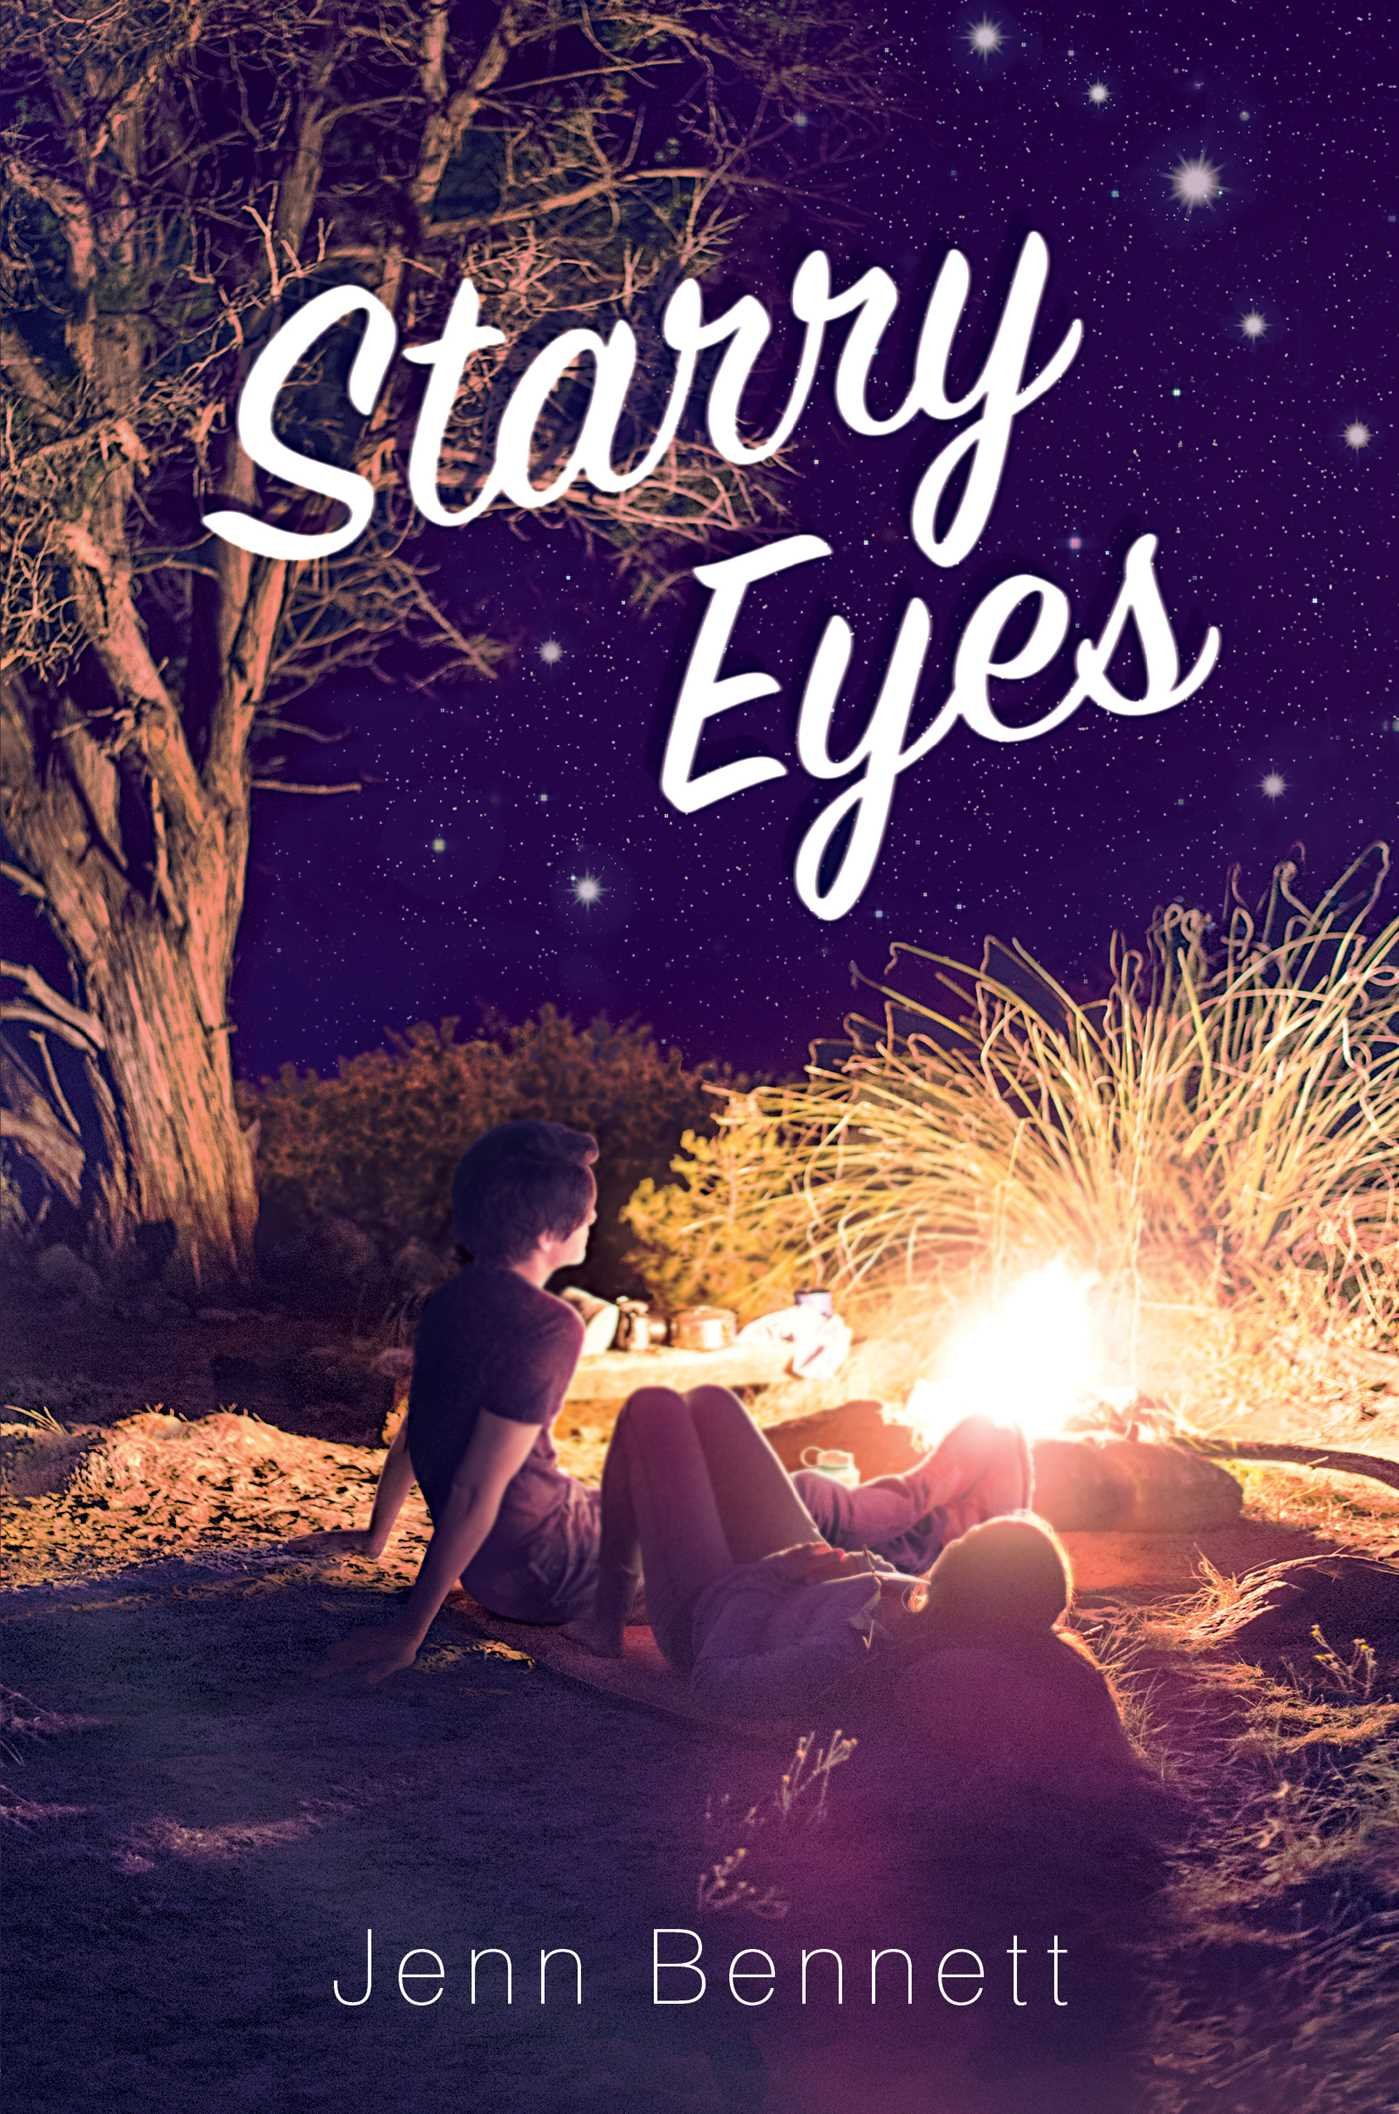 Amazon.com: Starry Eyes (9781481478809): Bennett, Jenn: Books